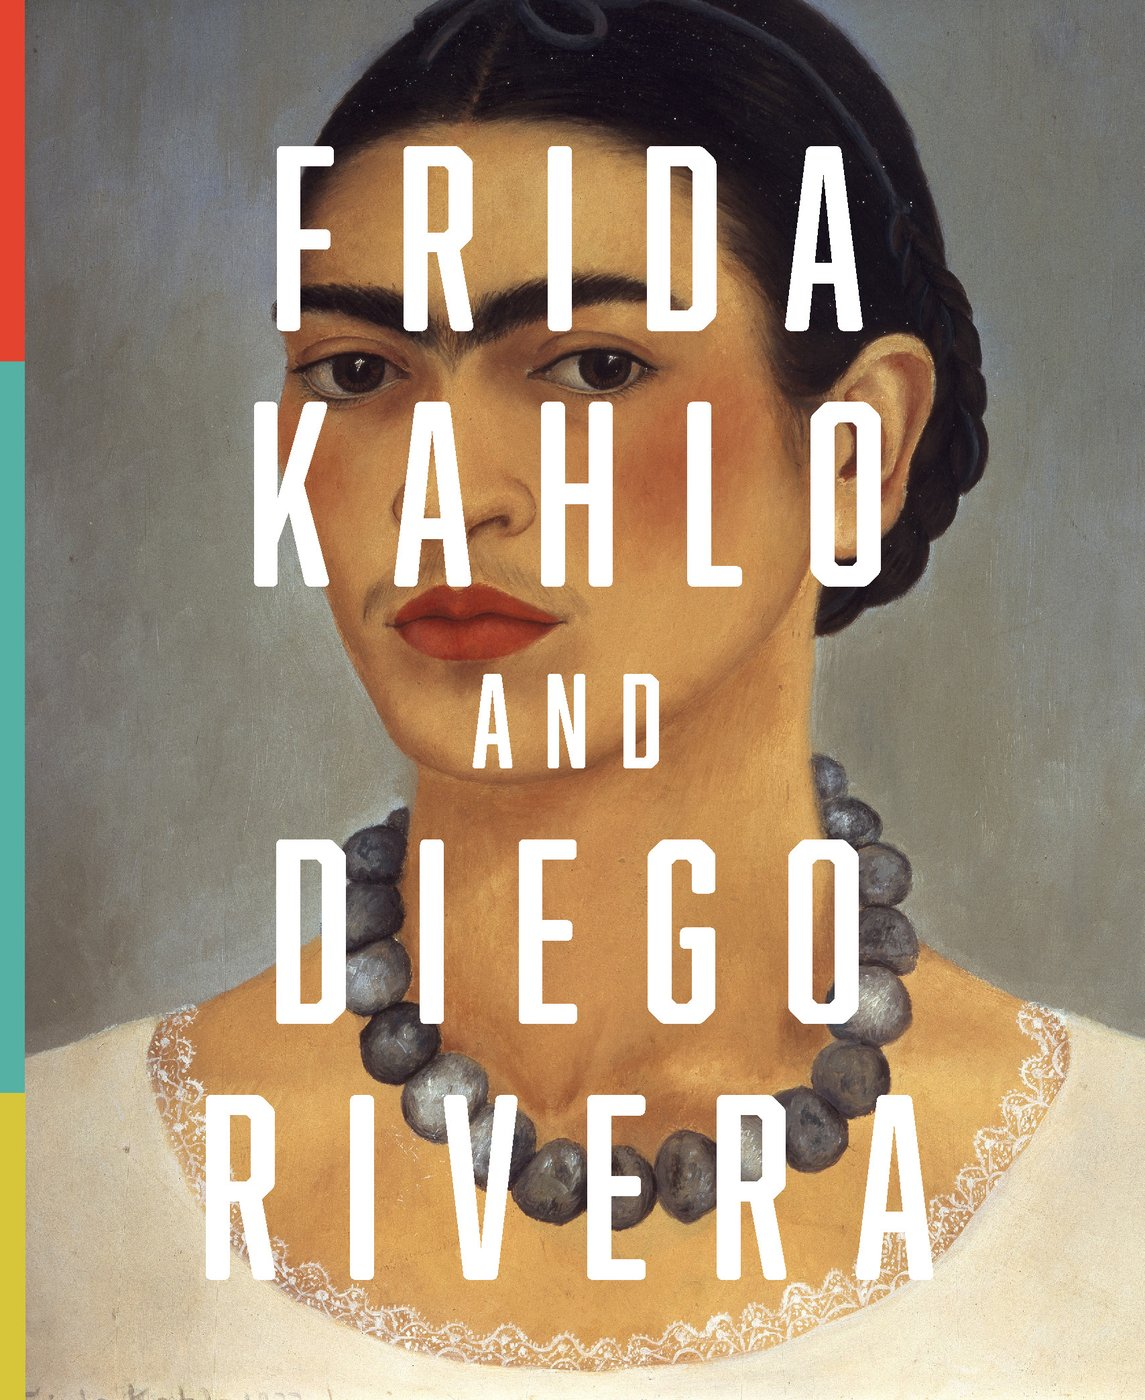 frida kahlo essay frida kahlo and diego rivera art gallery nsw  frida kahlo and diego rivera art gallery nsw frida kahlo and diego rivera from the jacques vogue magazine essay